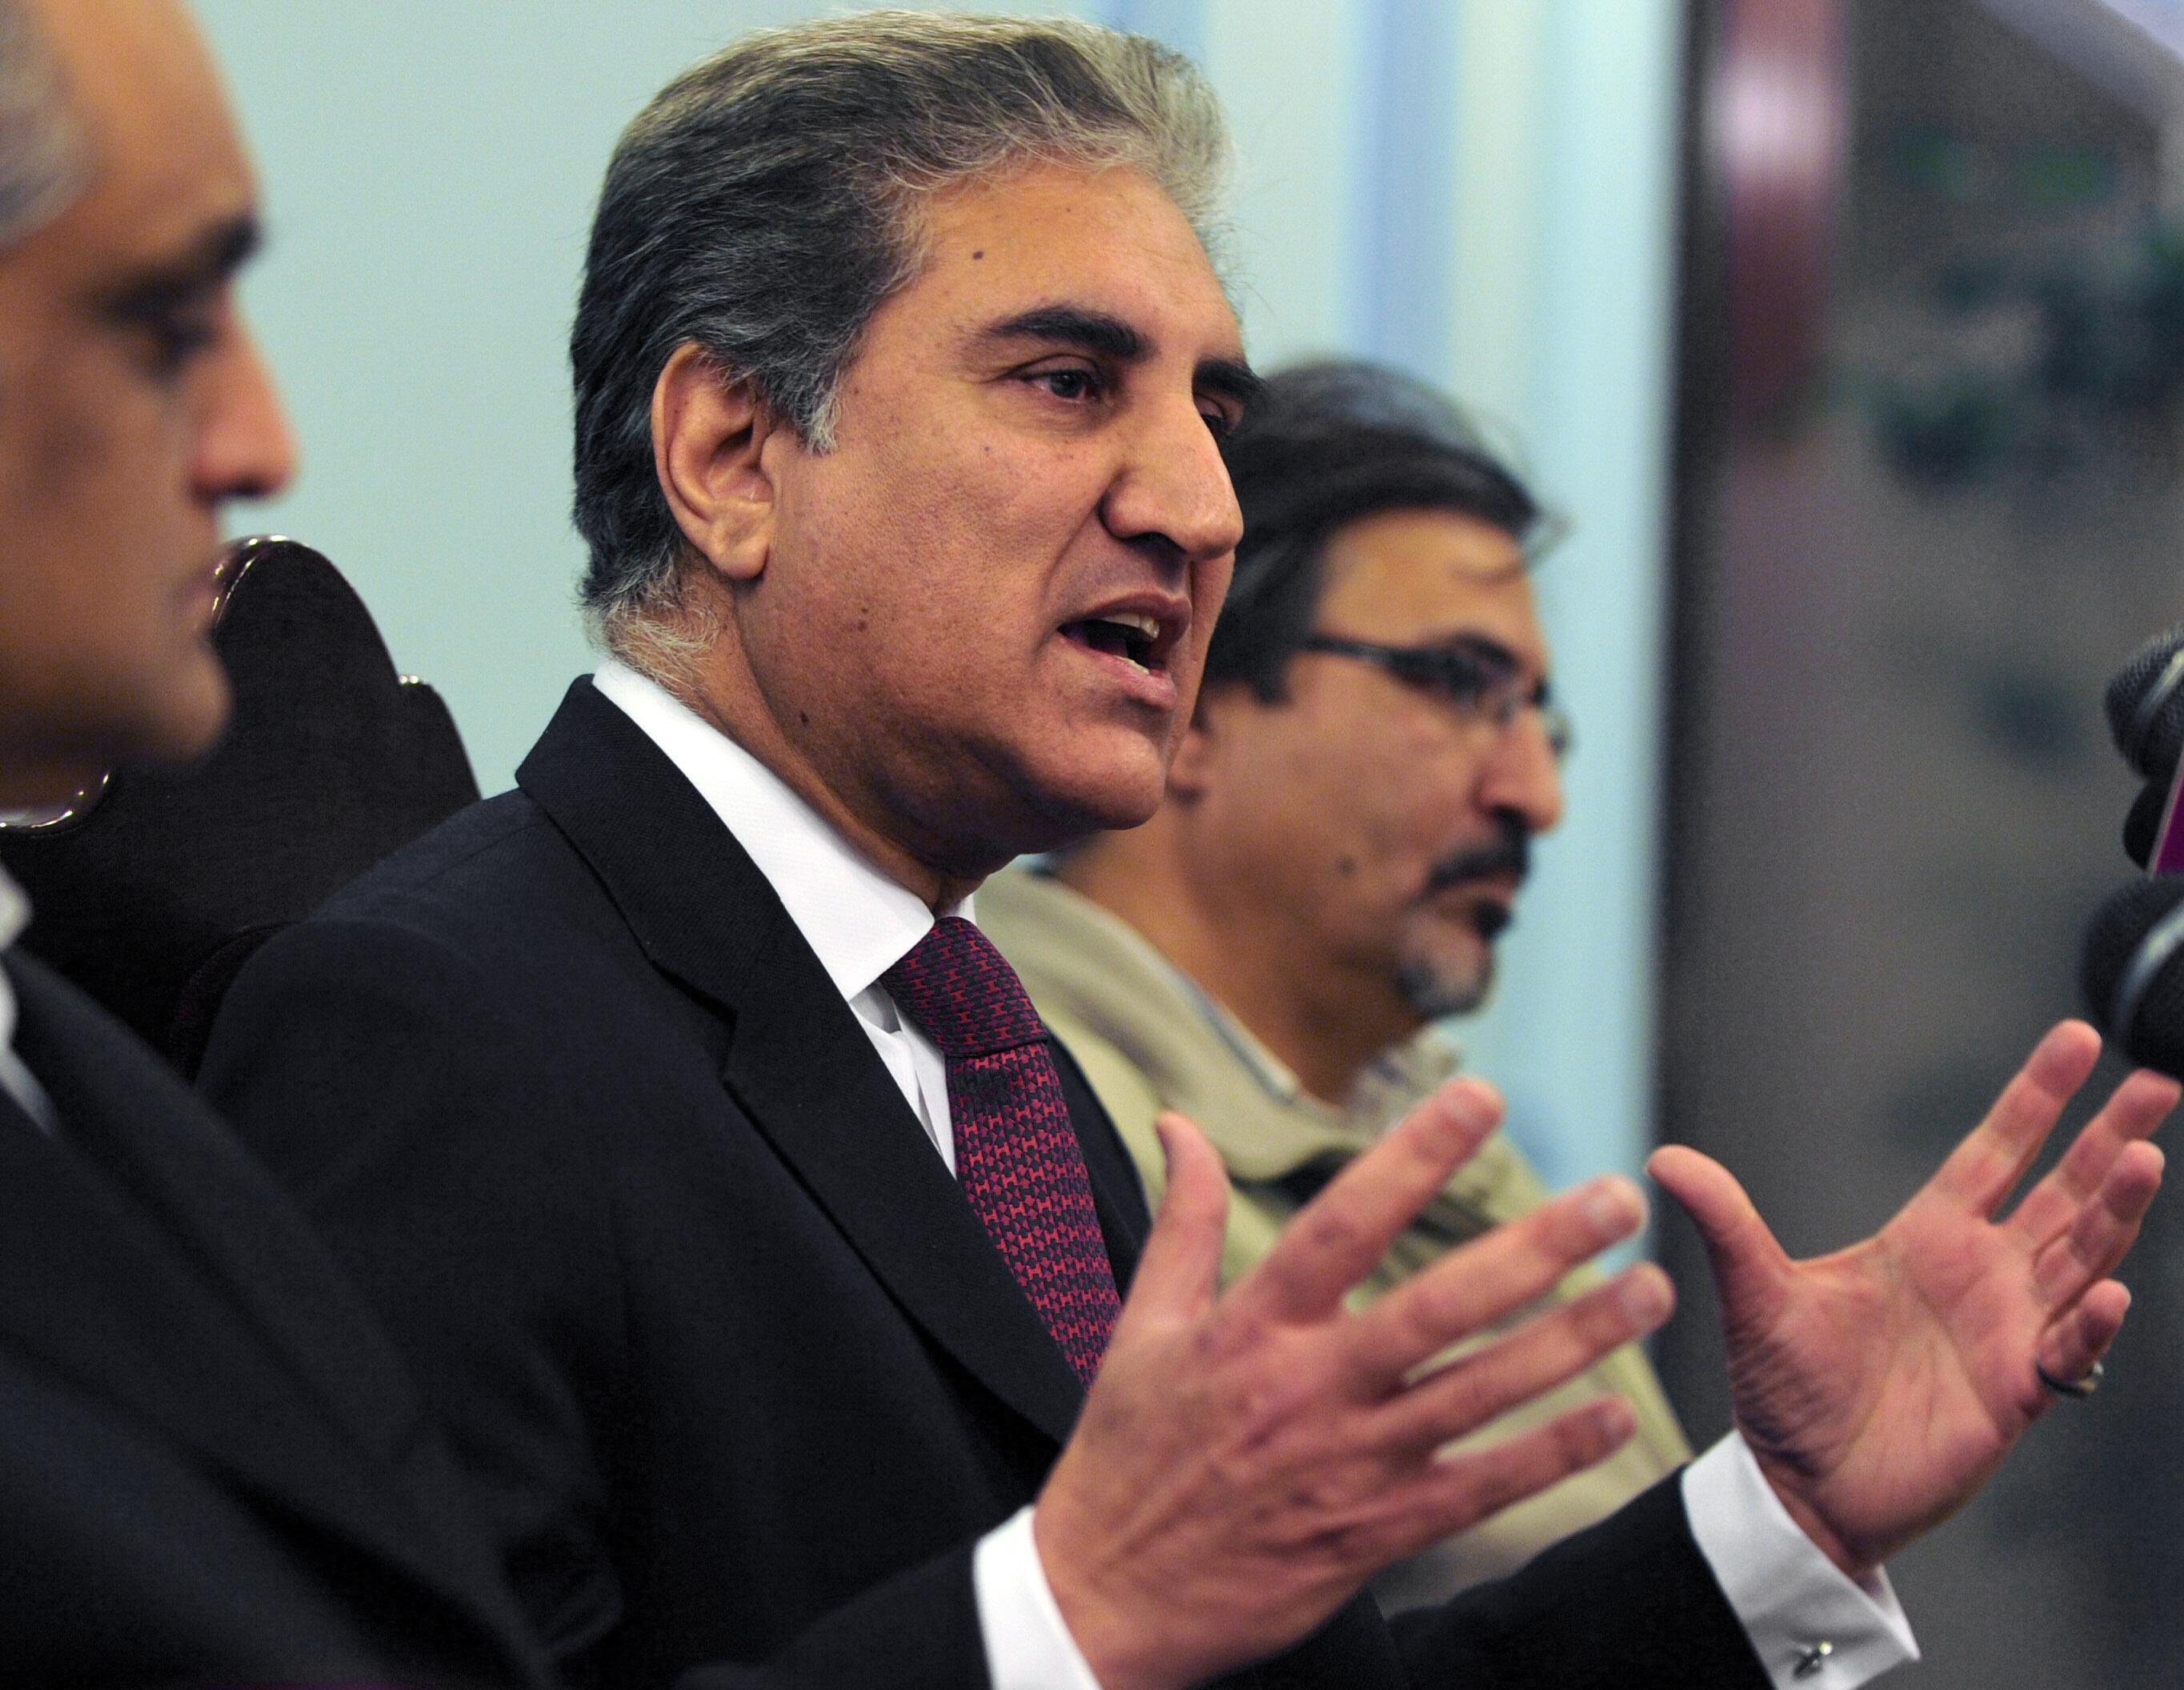 shah-mehmood-qureshi-afp-2-2-2-2-2-2-2-2-2-2-2-2-3-2-2